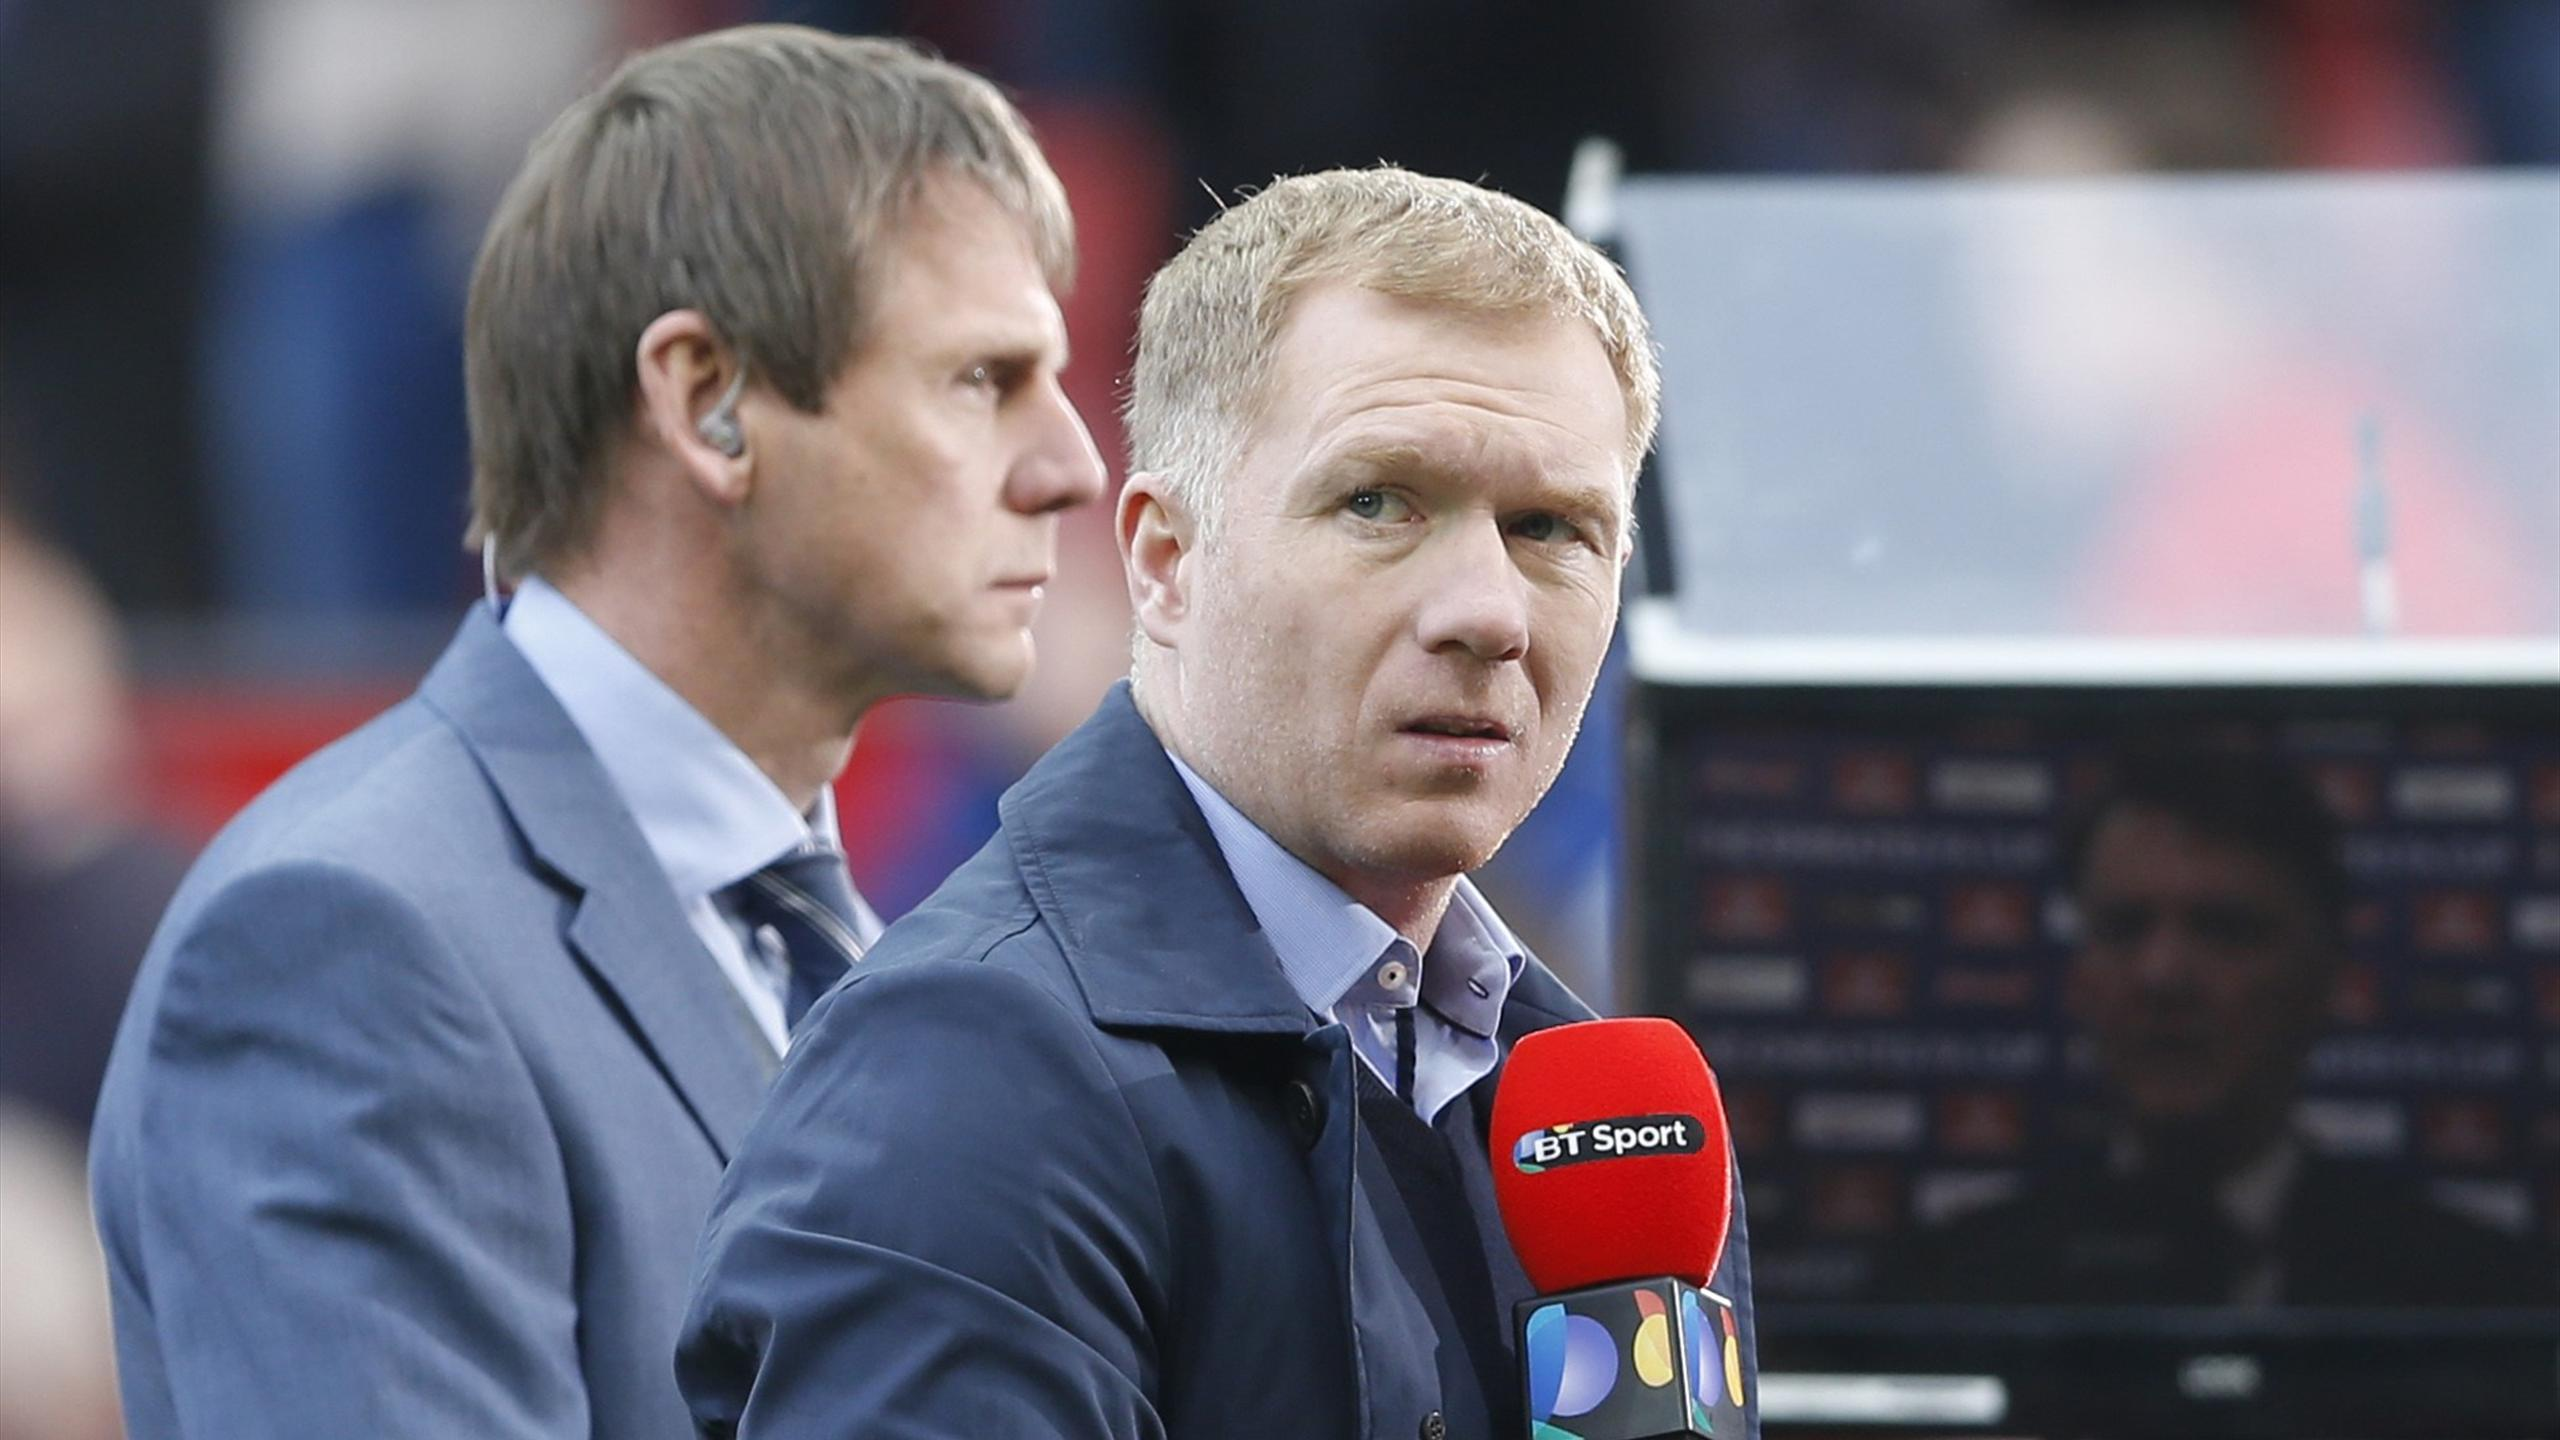 Stuart Pearce and Paul Scholes ready to make a TV appearance